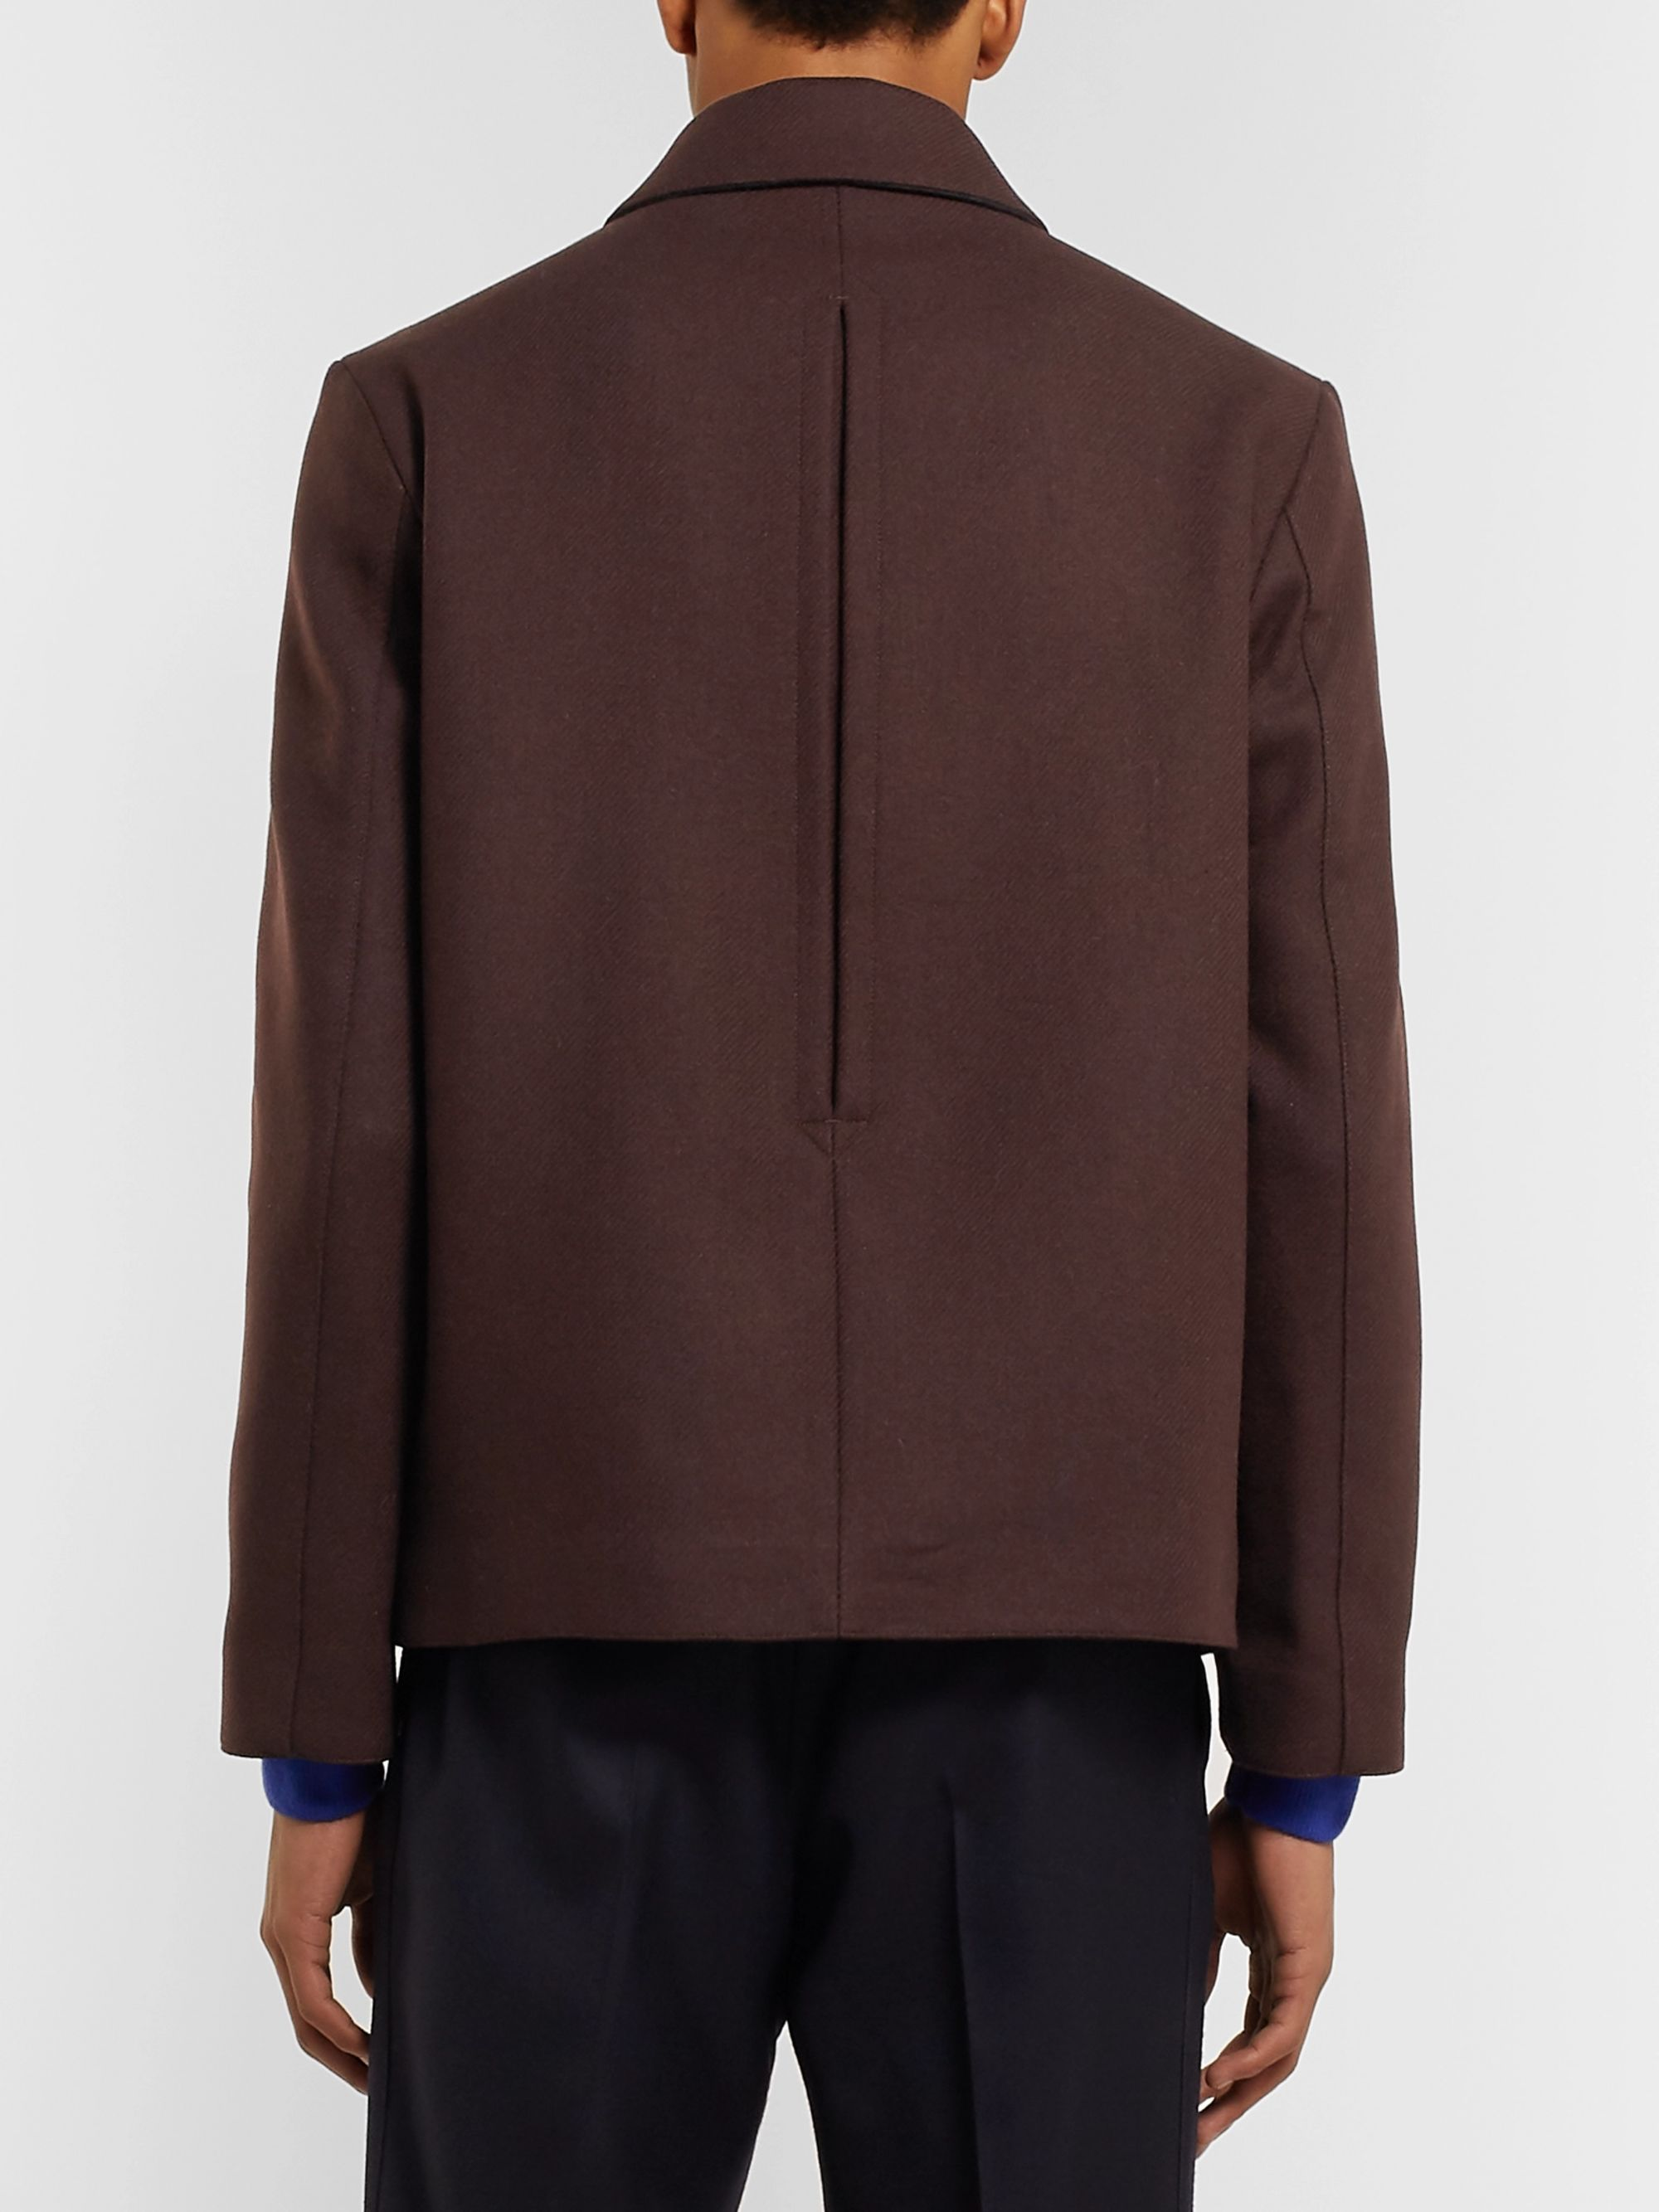 Mr P. Wool-Blend Blouson Jacket